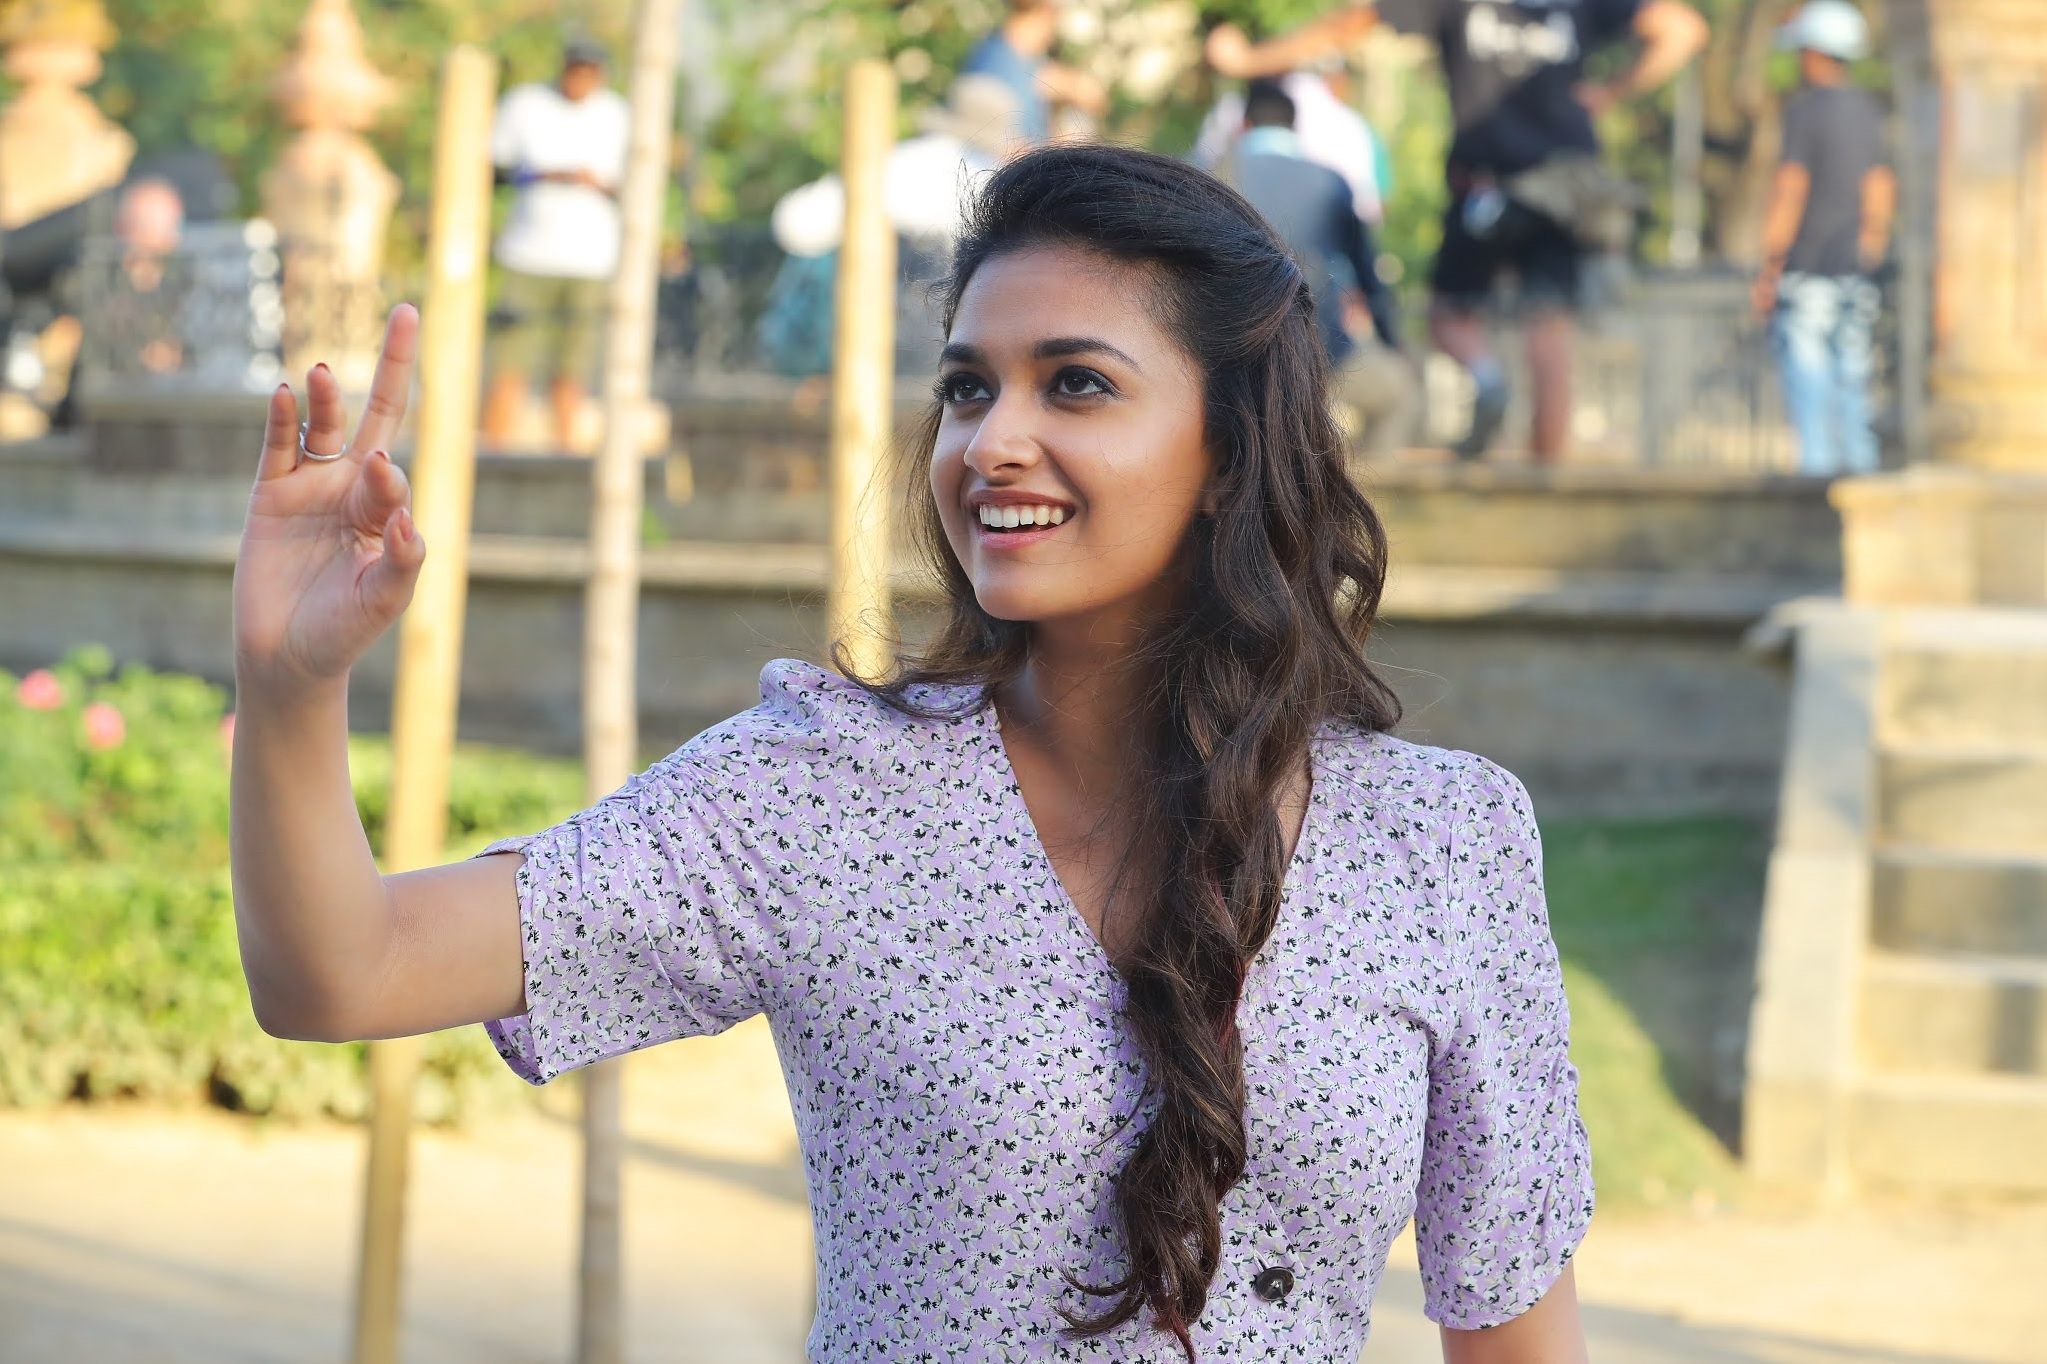 Keerthy Suresh Awesome Pretty Looks New HD Stills from Miss India 6